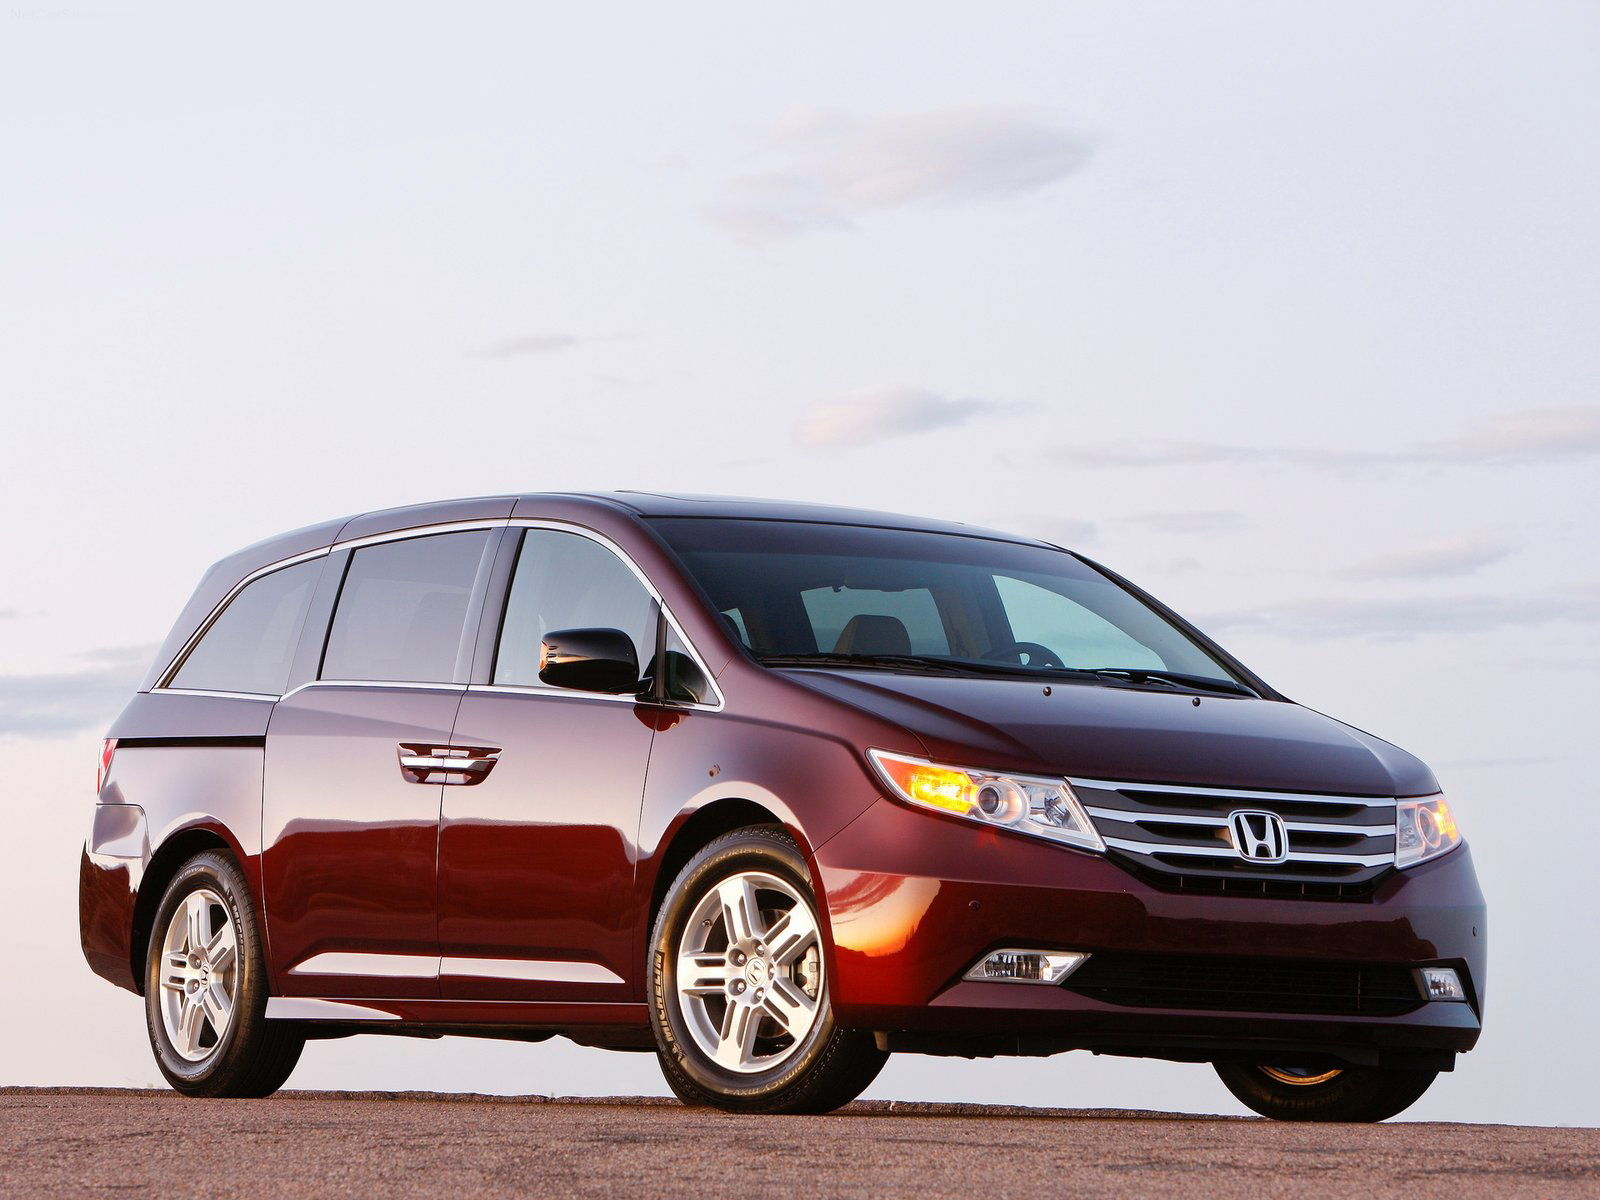 2012 honda odyssey car wallpaper review features